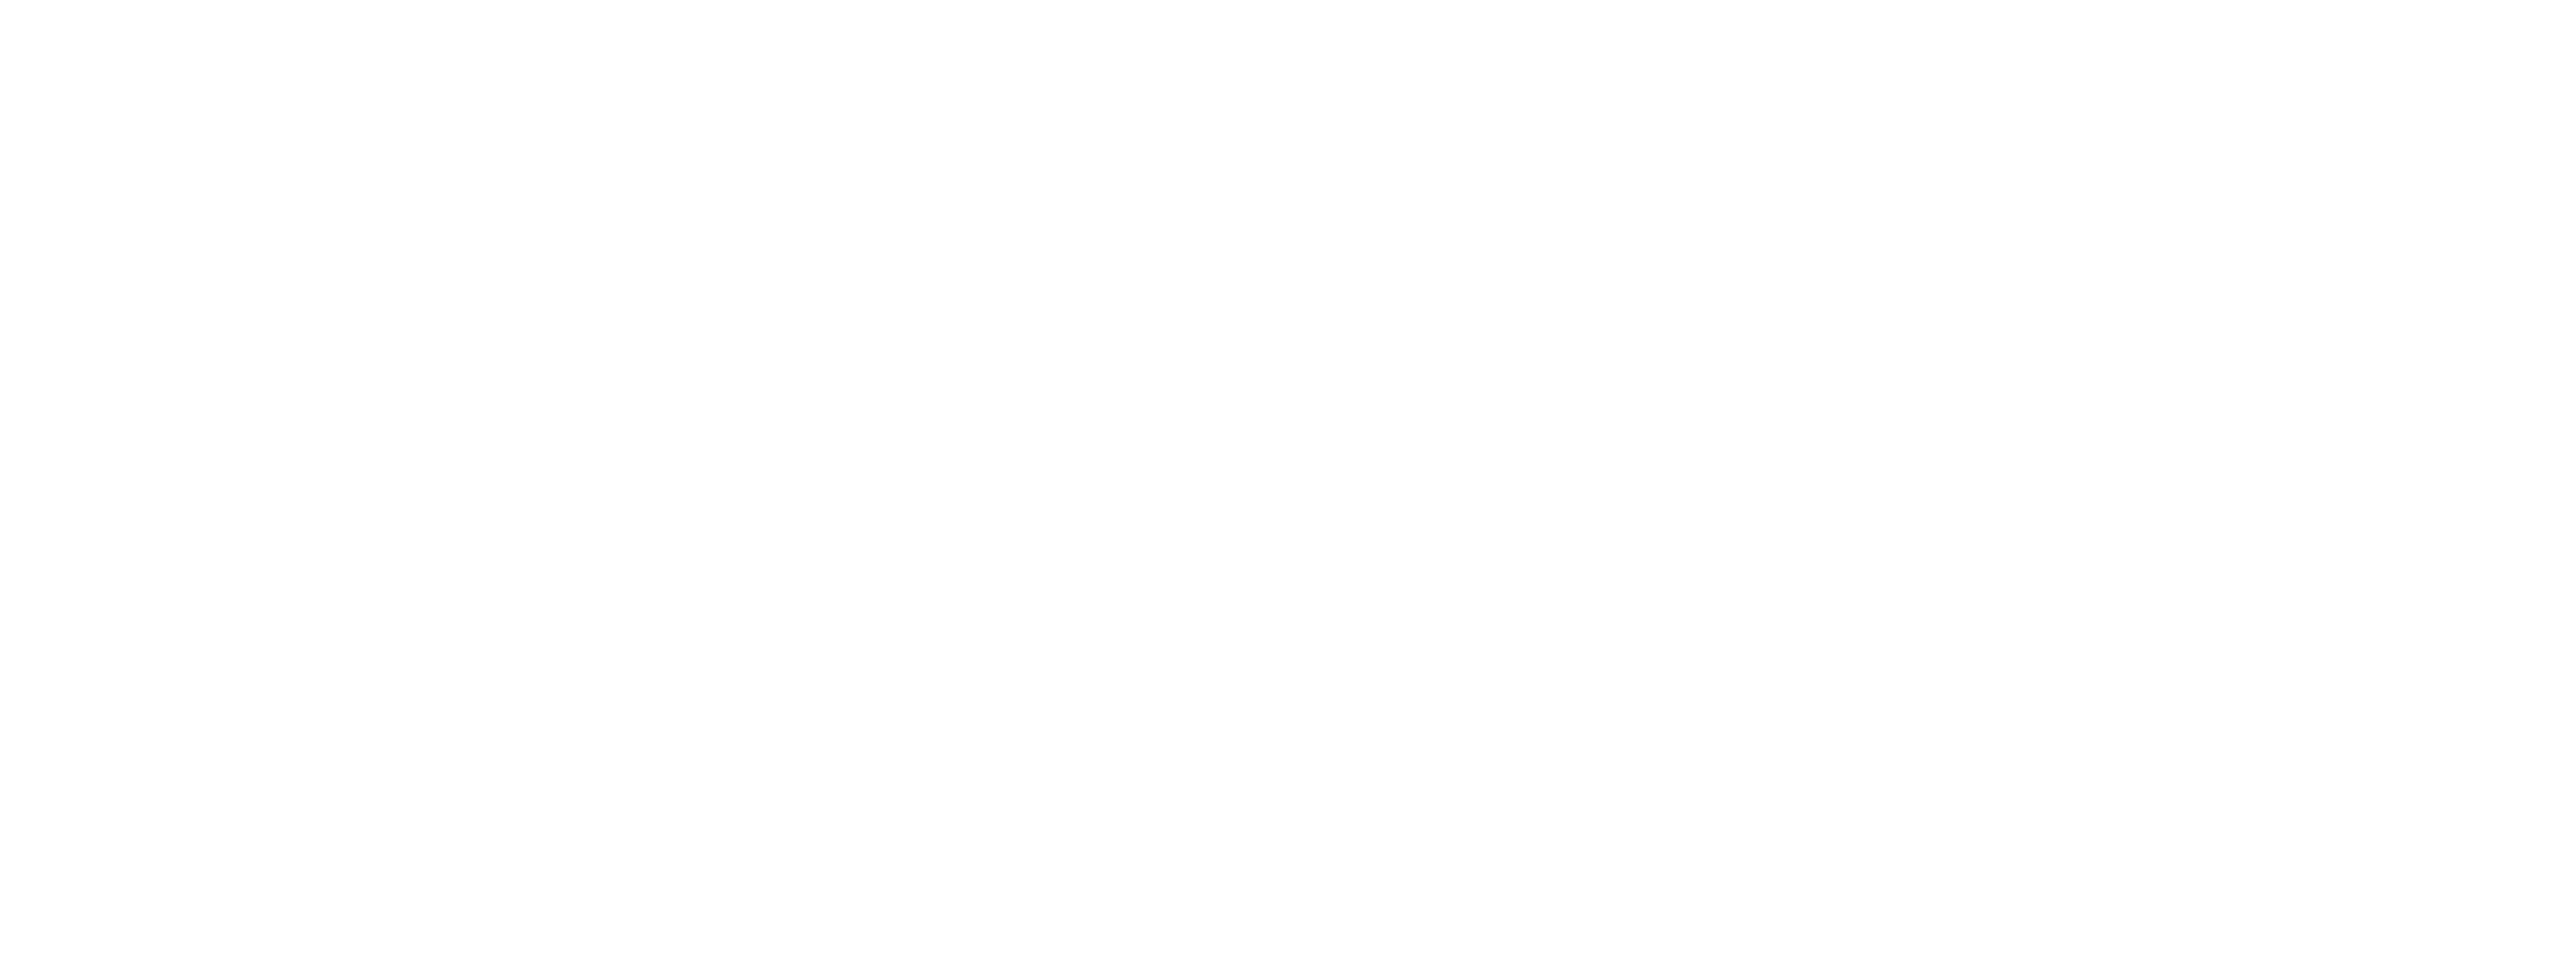 icon-Station-of-the-Future-Stacked-Shaded-White.png